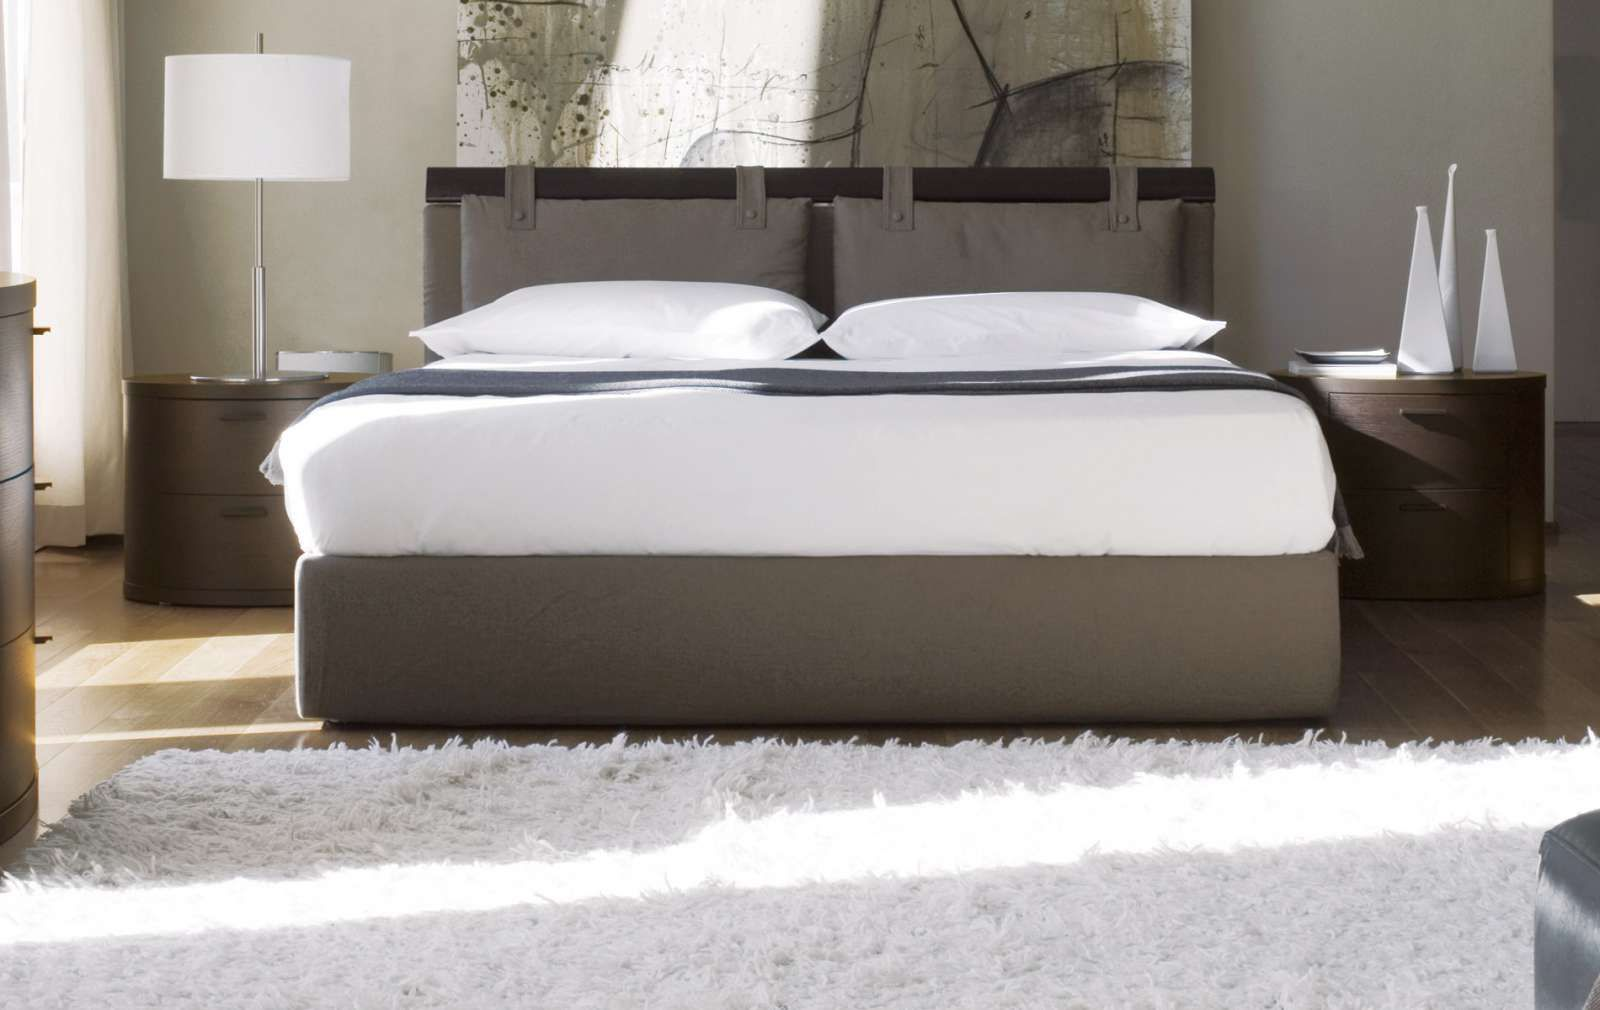 Arredamento Chateau D Aux.Bed Geranio Chateau D Ax Lp Furniture Home Decor Mattress